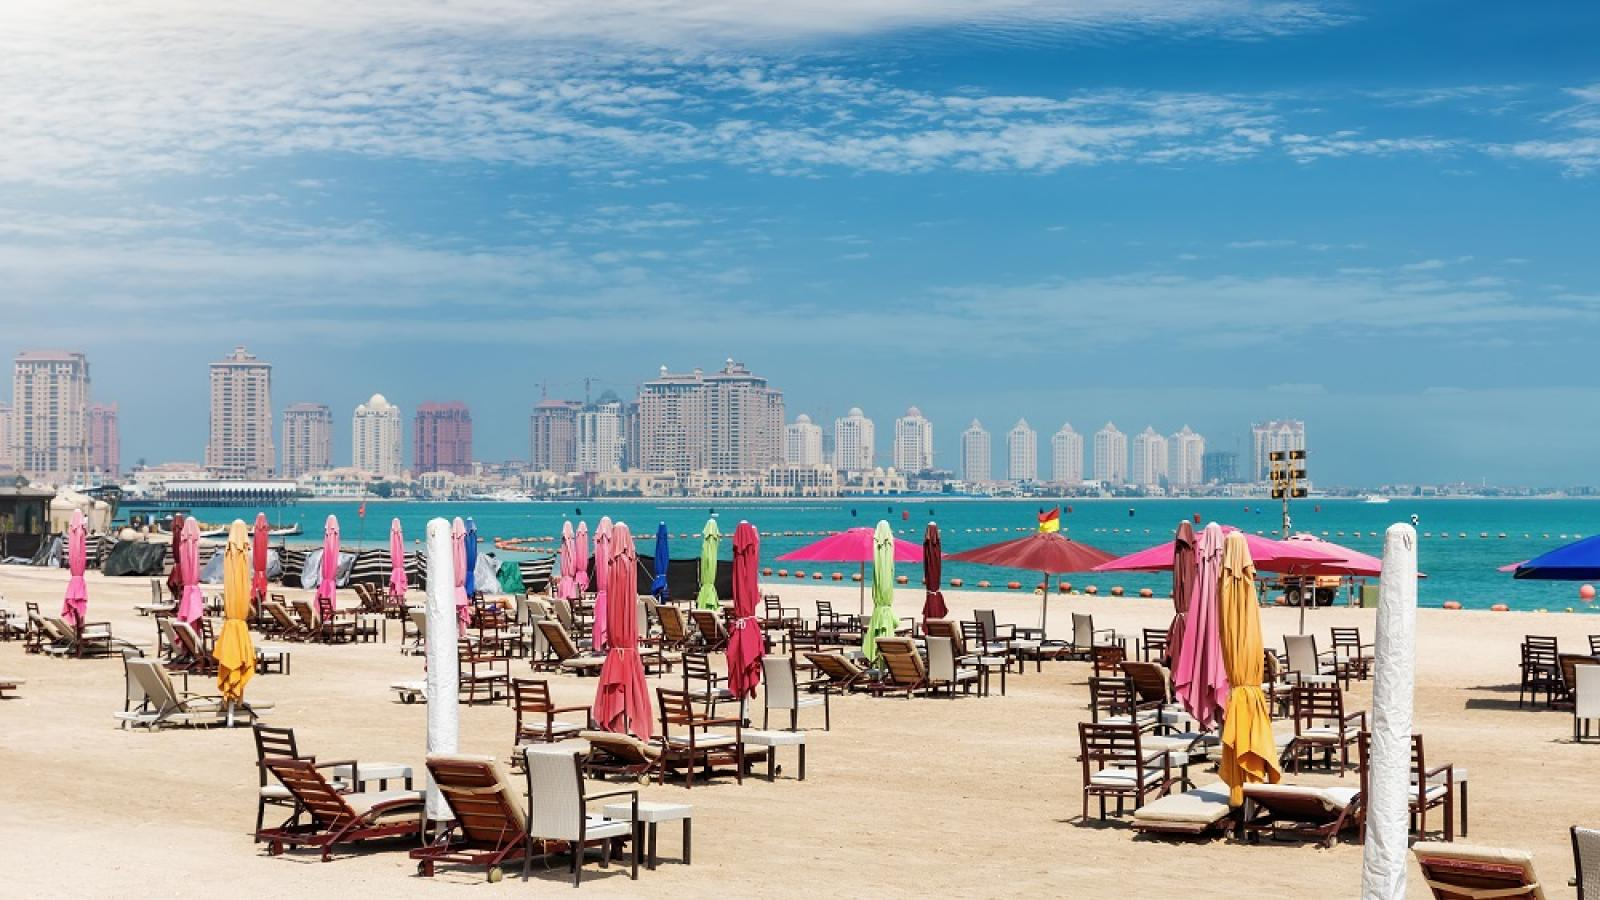 HMC urged all families to take necessary precautions at beaches, swimming pools